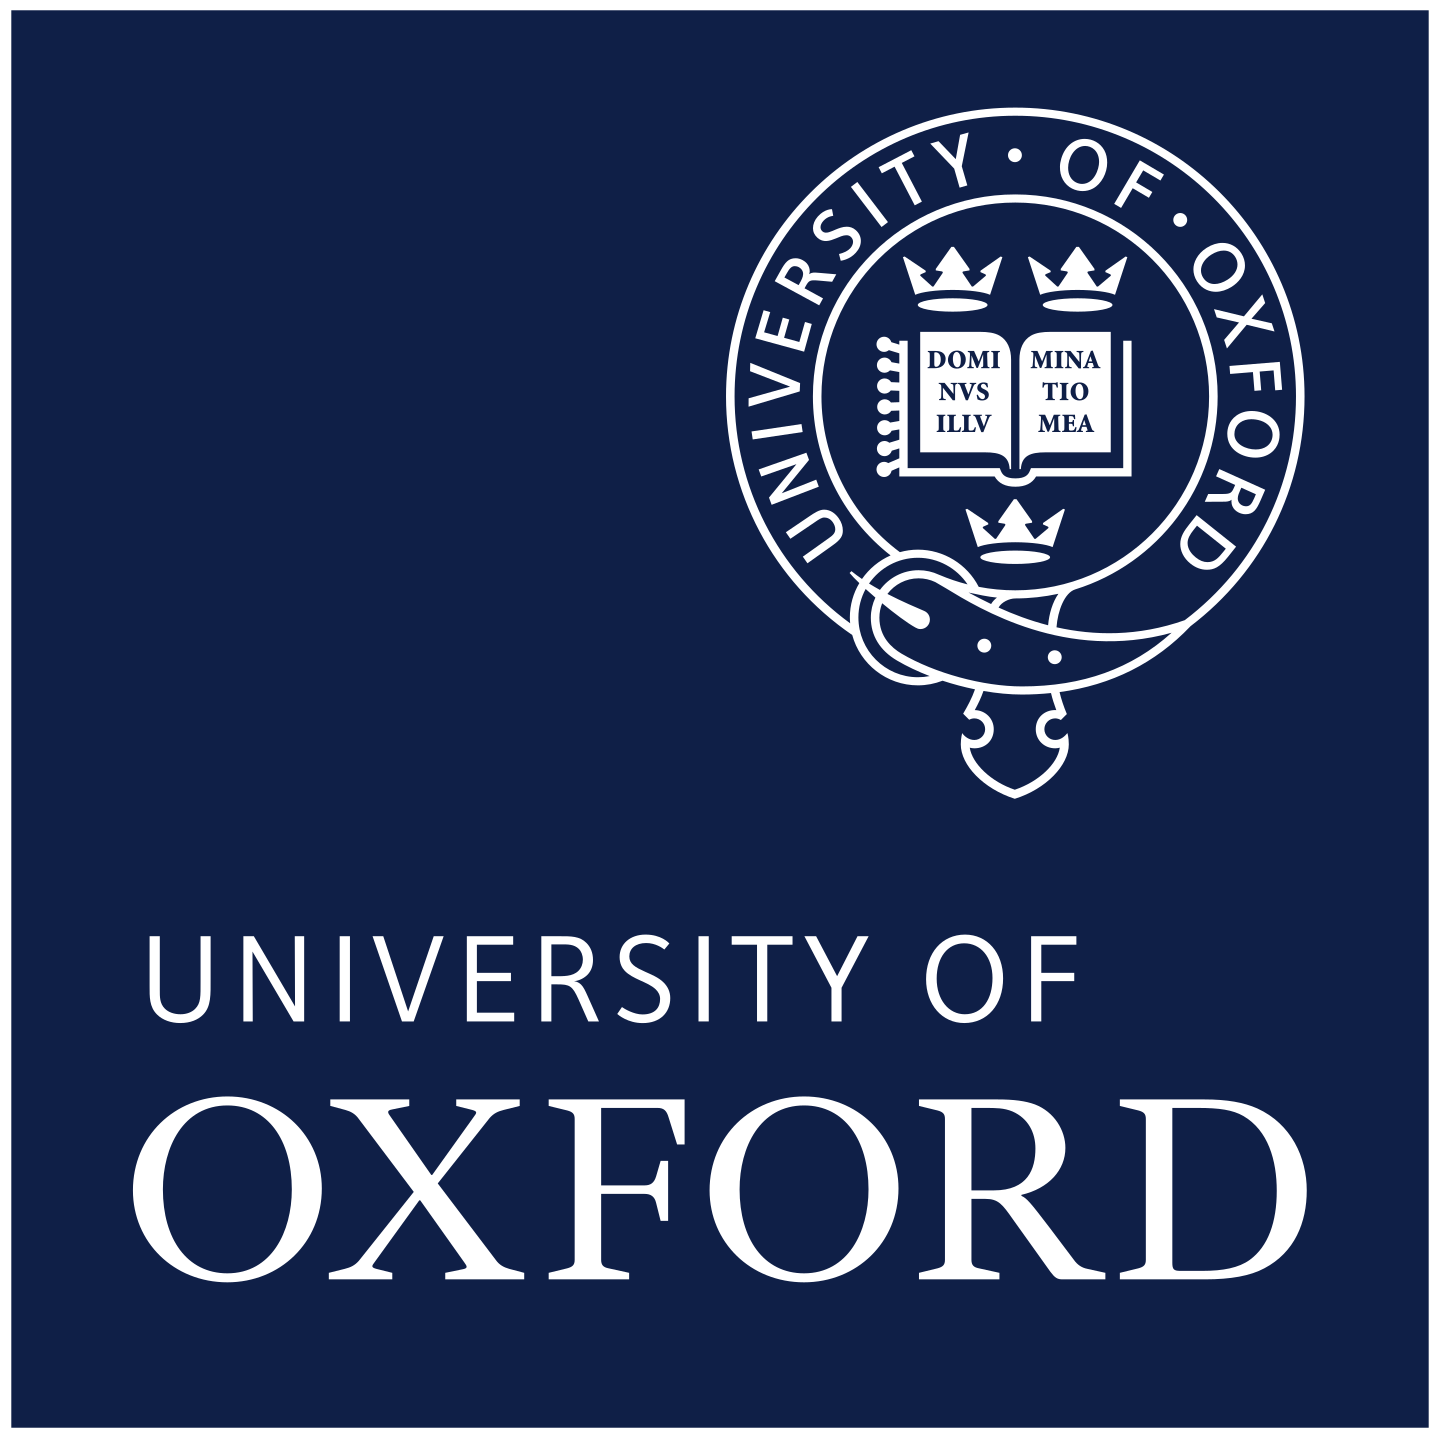 university of oxford logo 3 - Universidad de Oxford Logo